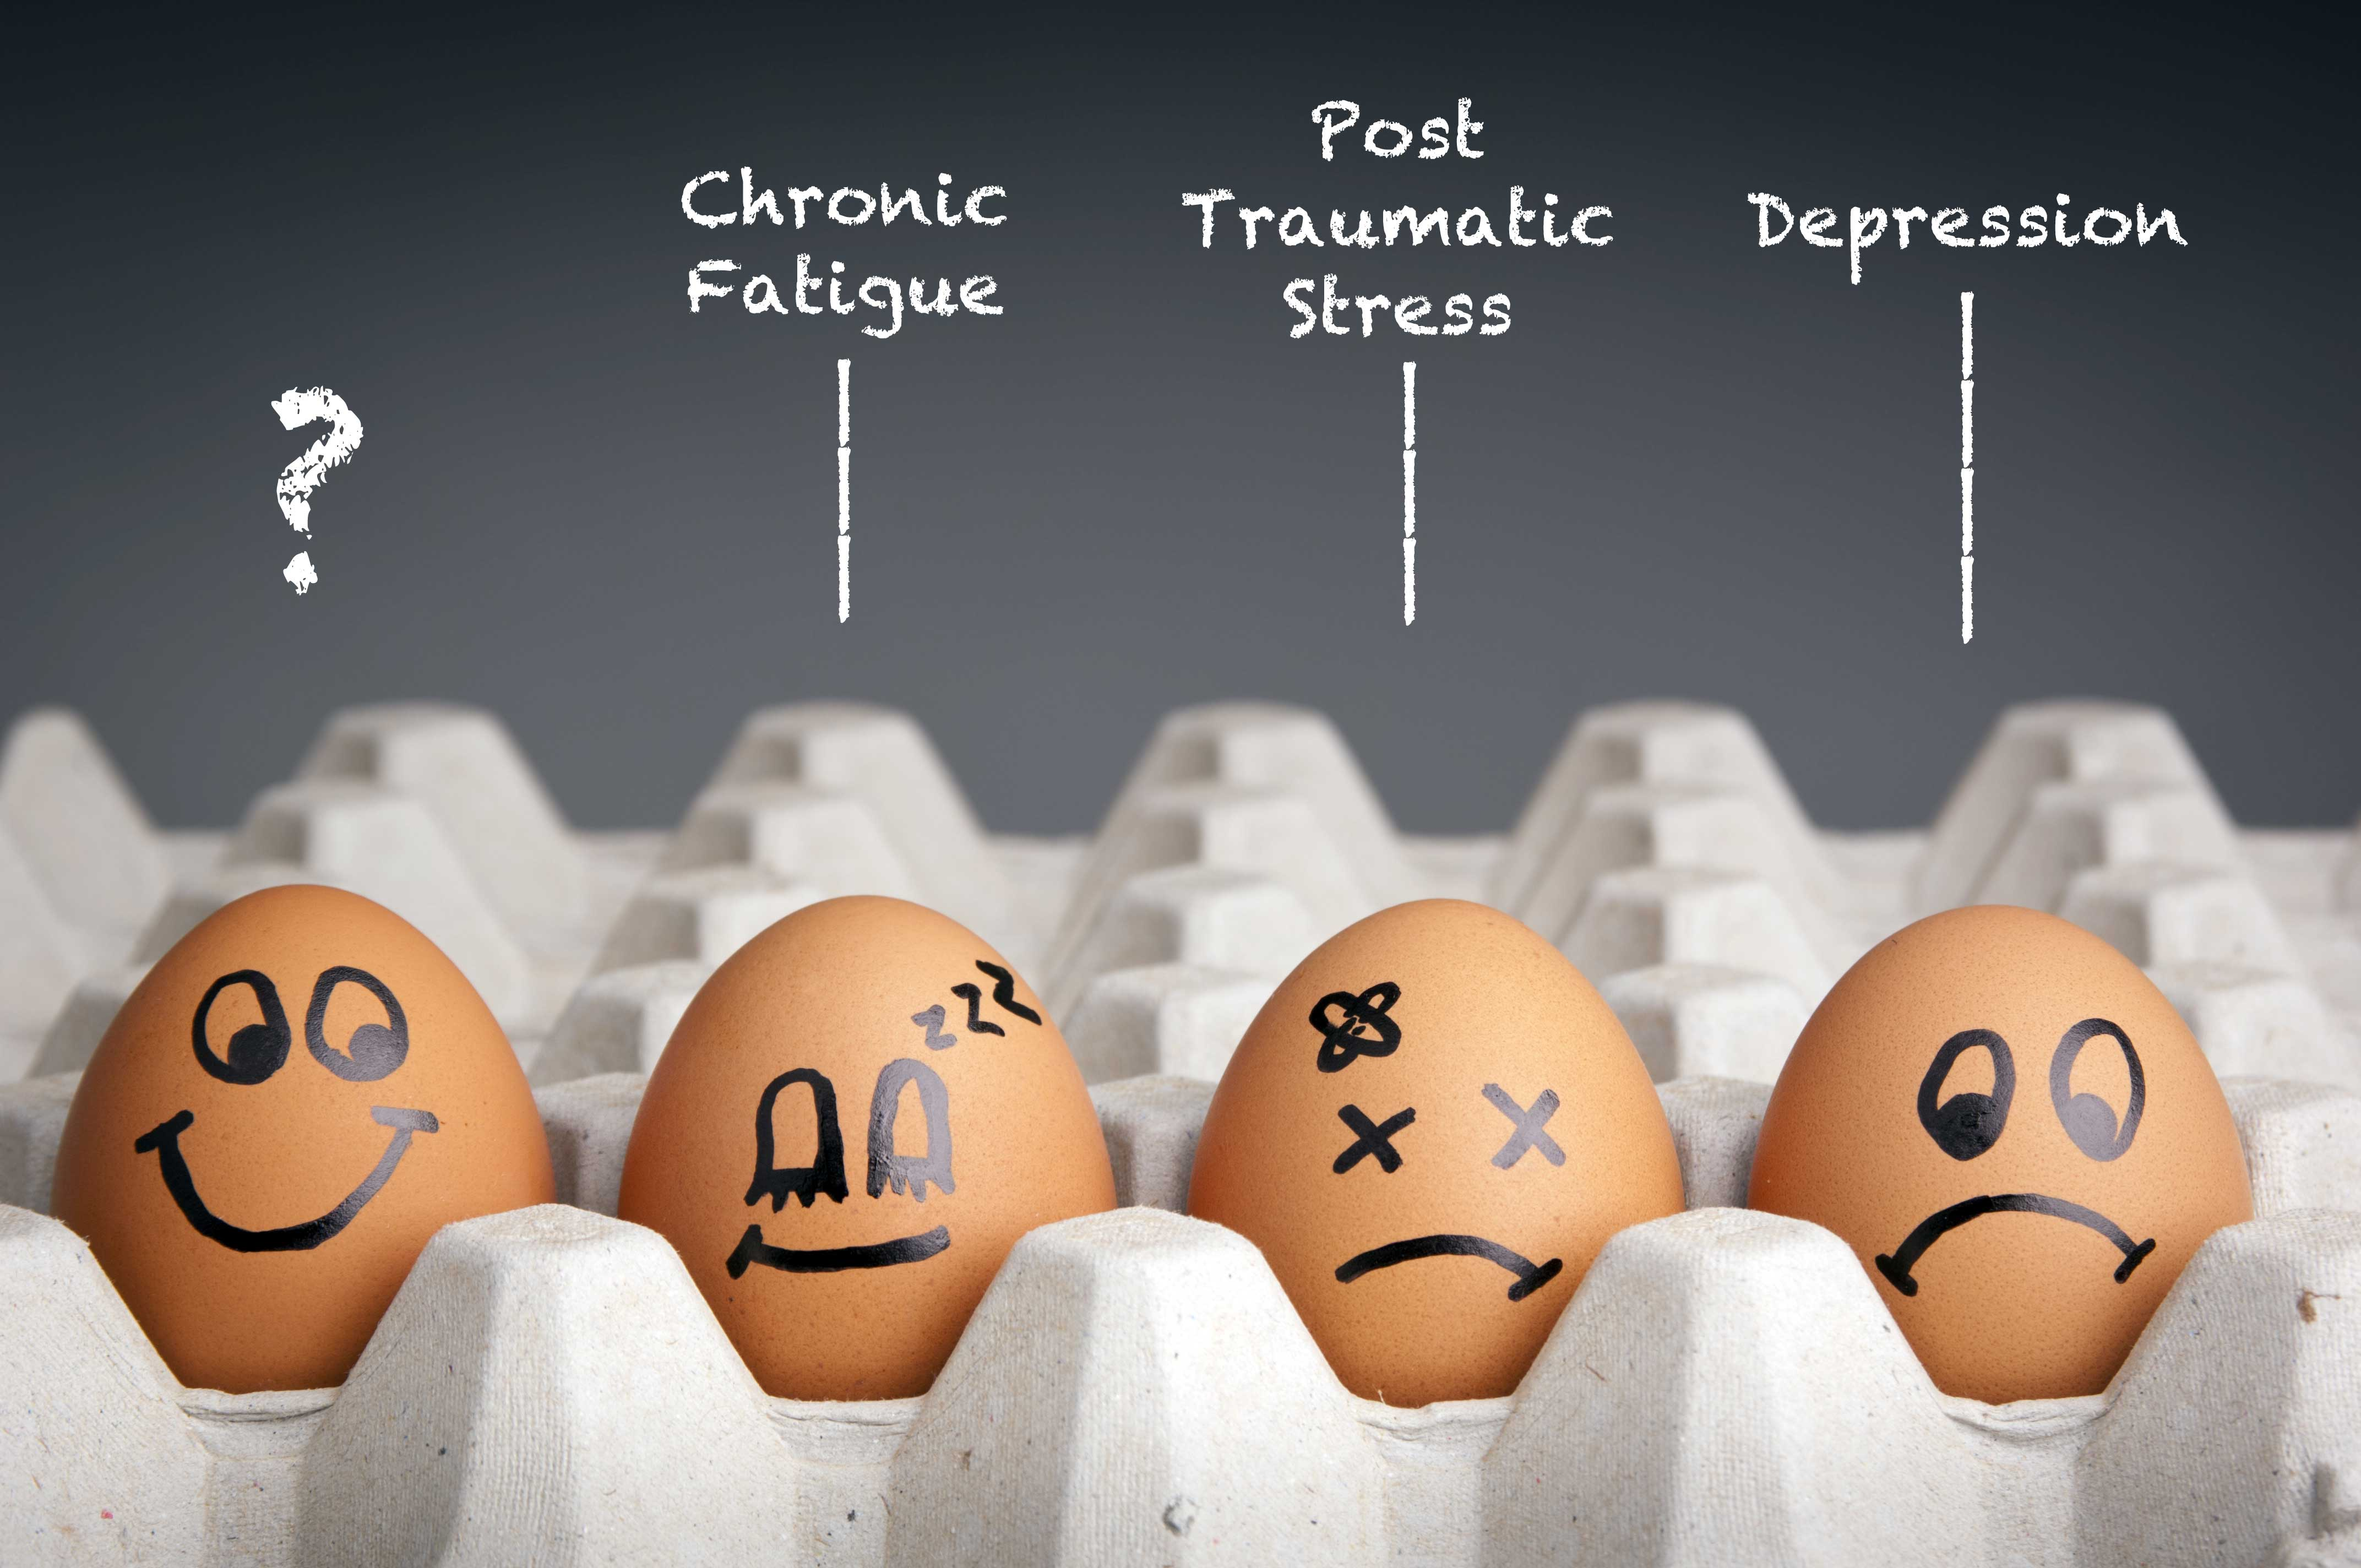 pictures of fragile eggs with mental health symptoms written on them